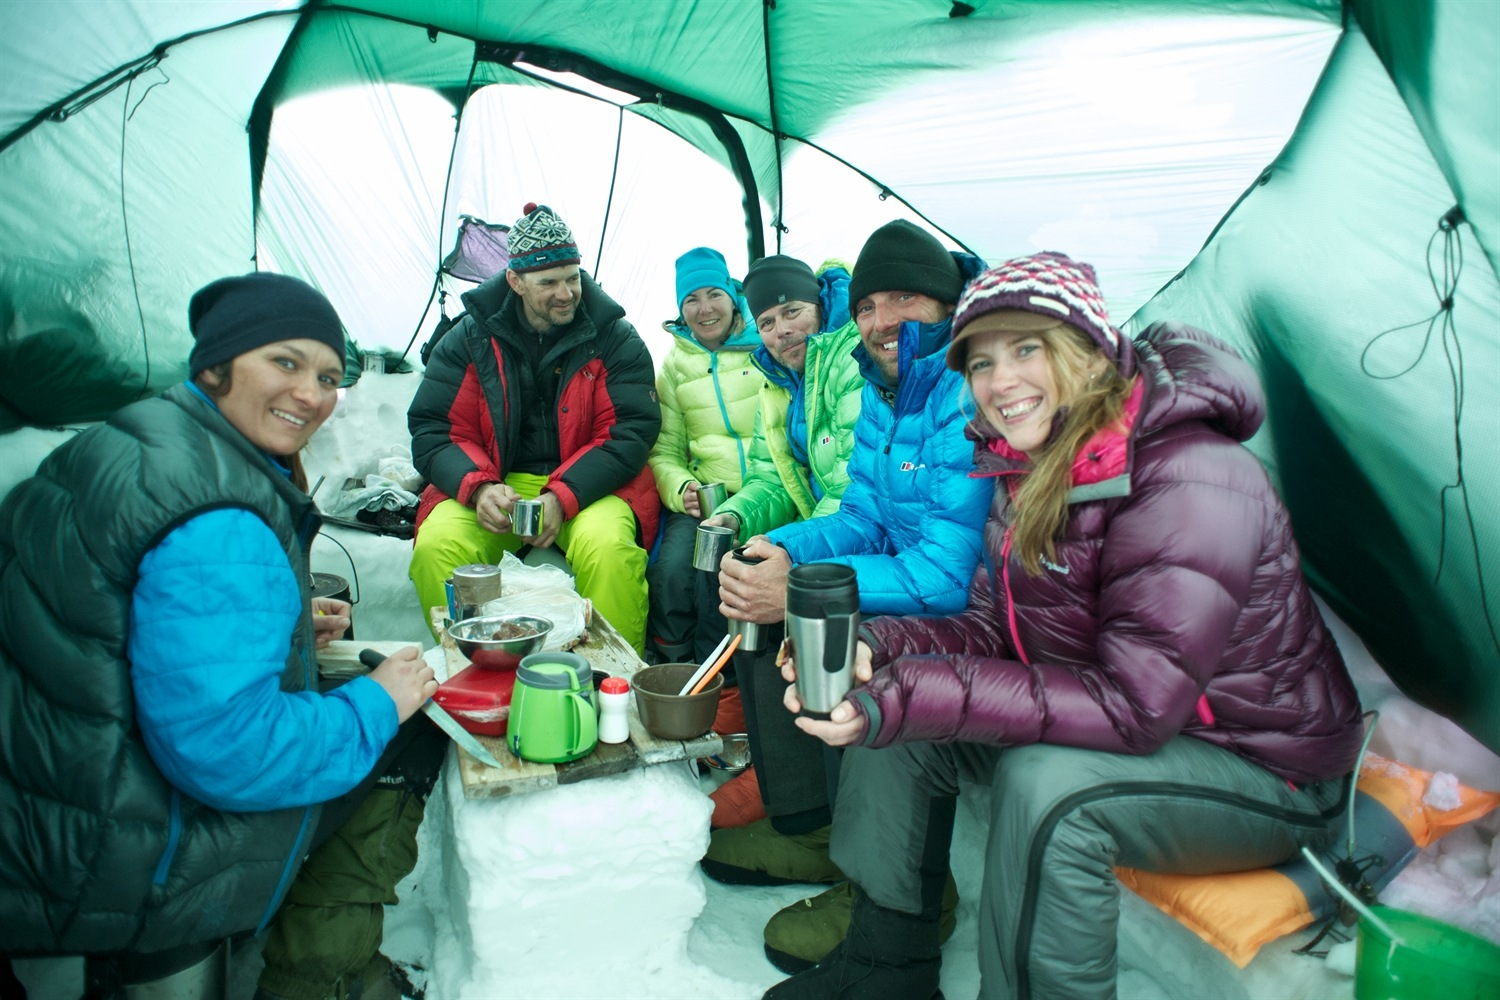 In the kitchen tent having dinner. Photo courtesy of Martin Hartley